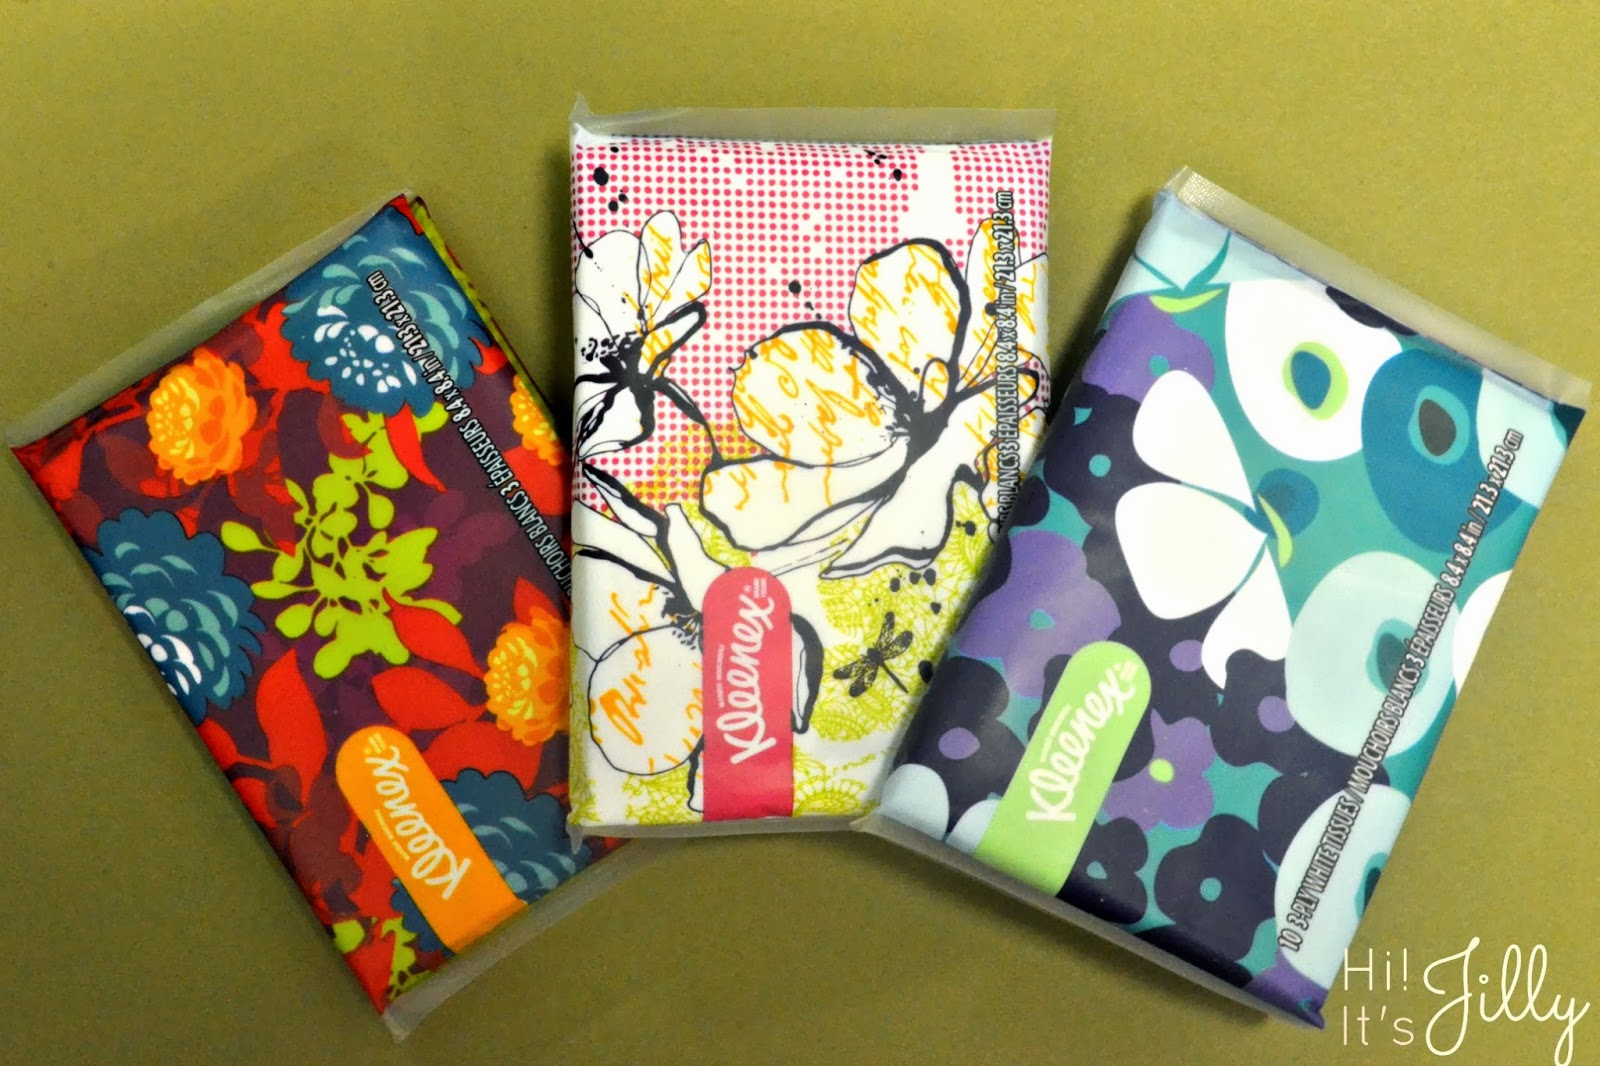 Lovin' the fun styles and colors of Kleenex Slim Packs. Perfect for tossing in a purse or backpack! #KleenexStyle